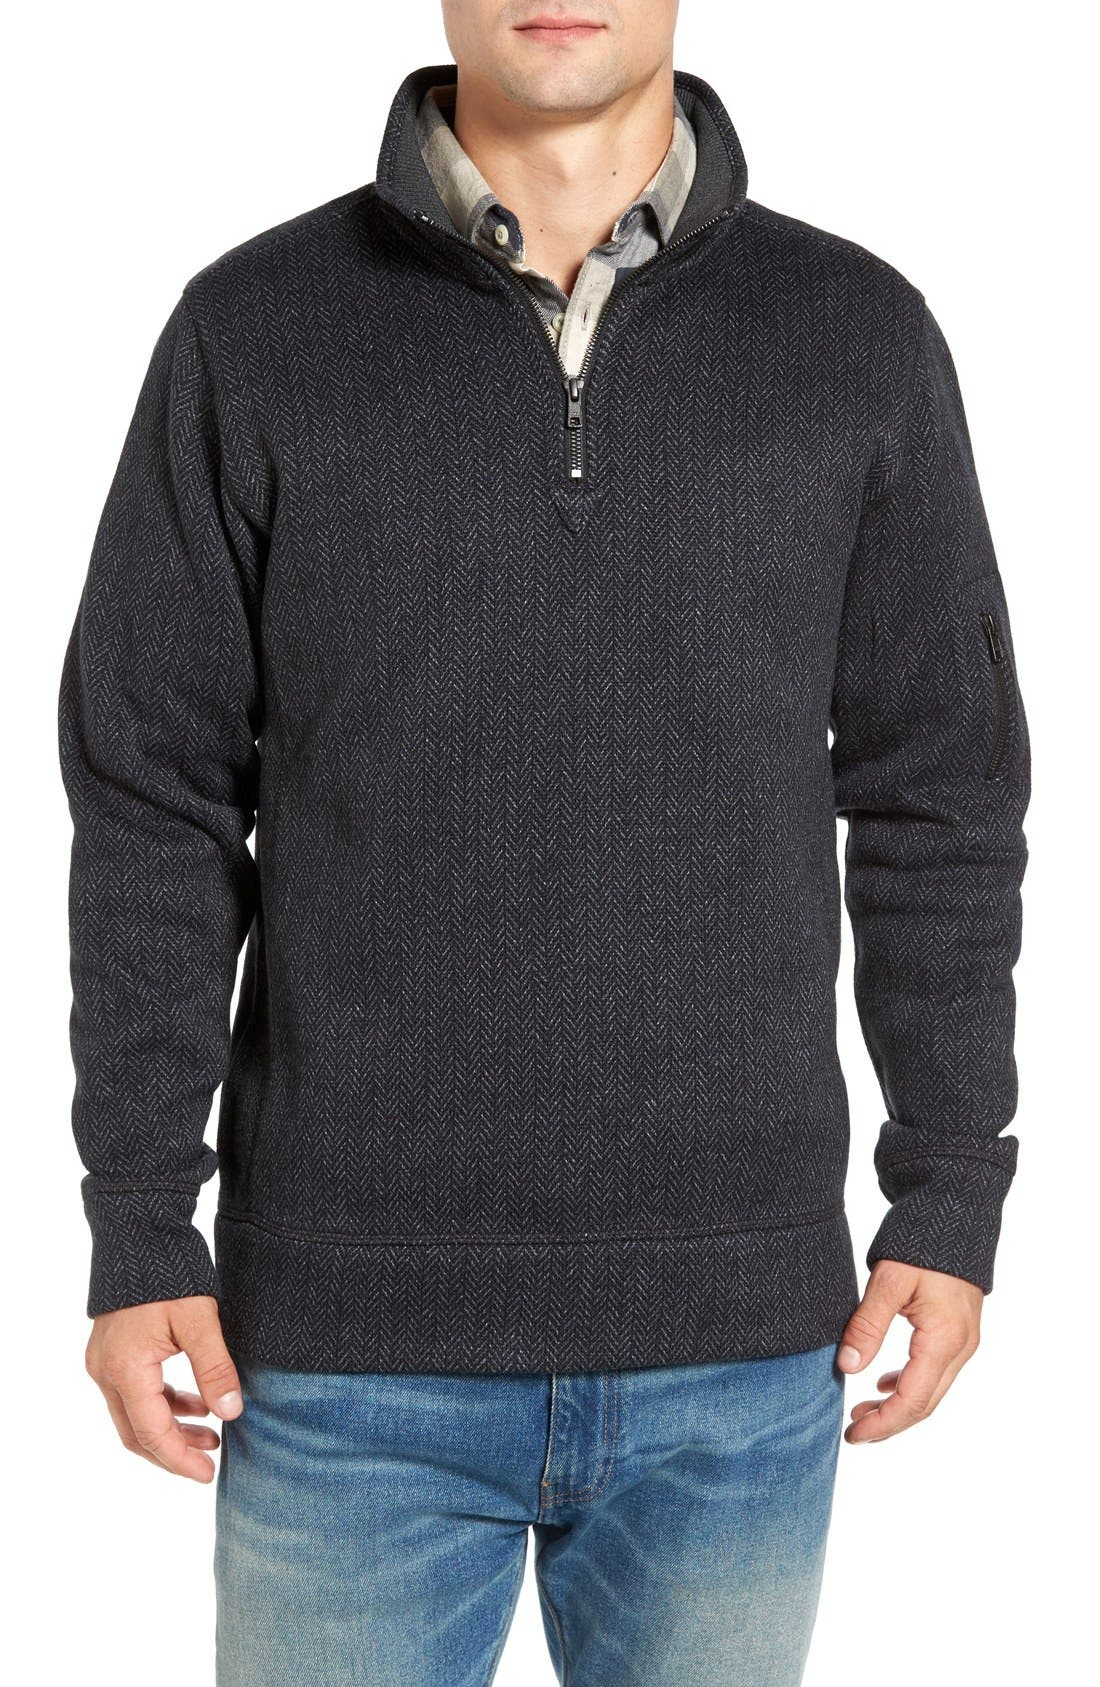 Jeremiah Lance Herringbone Zip Mock Neck Sweater